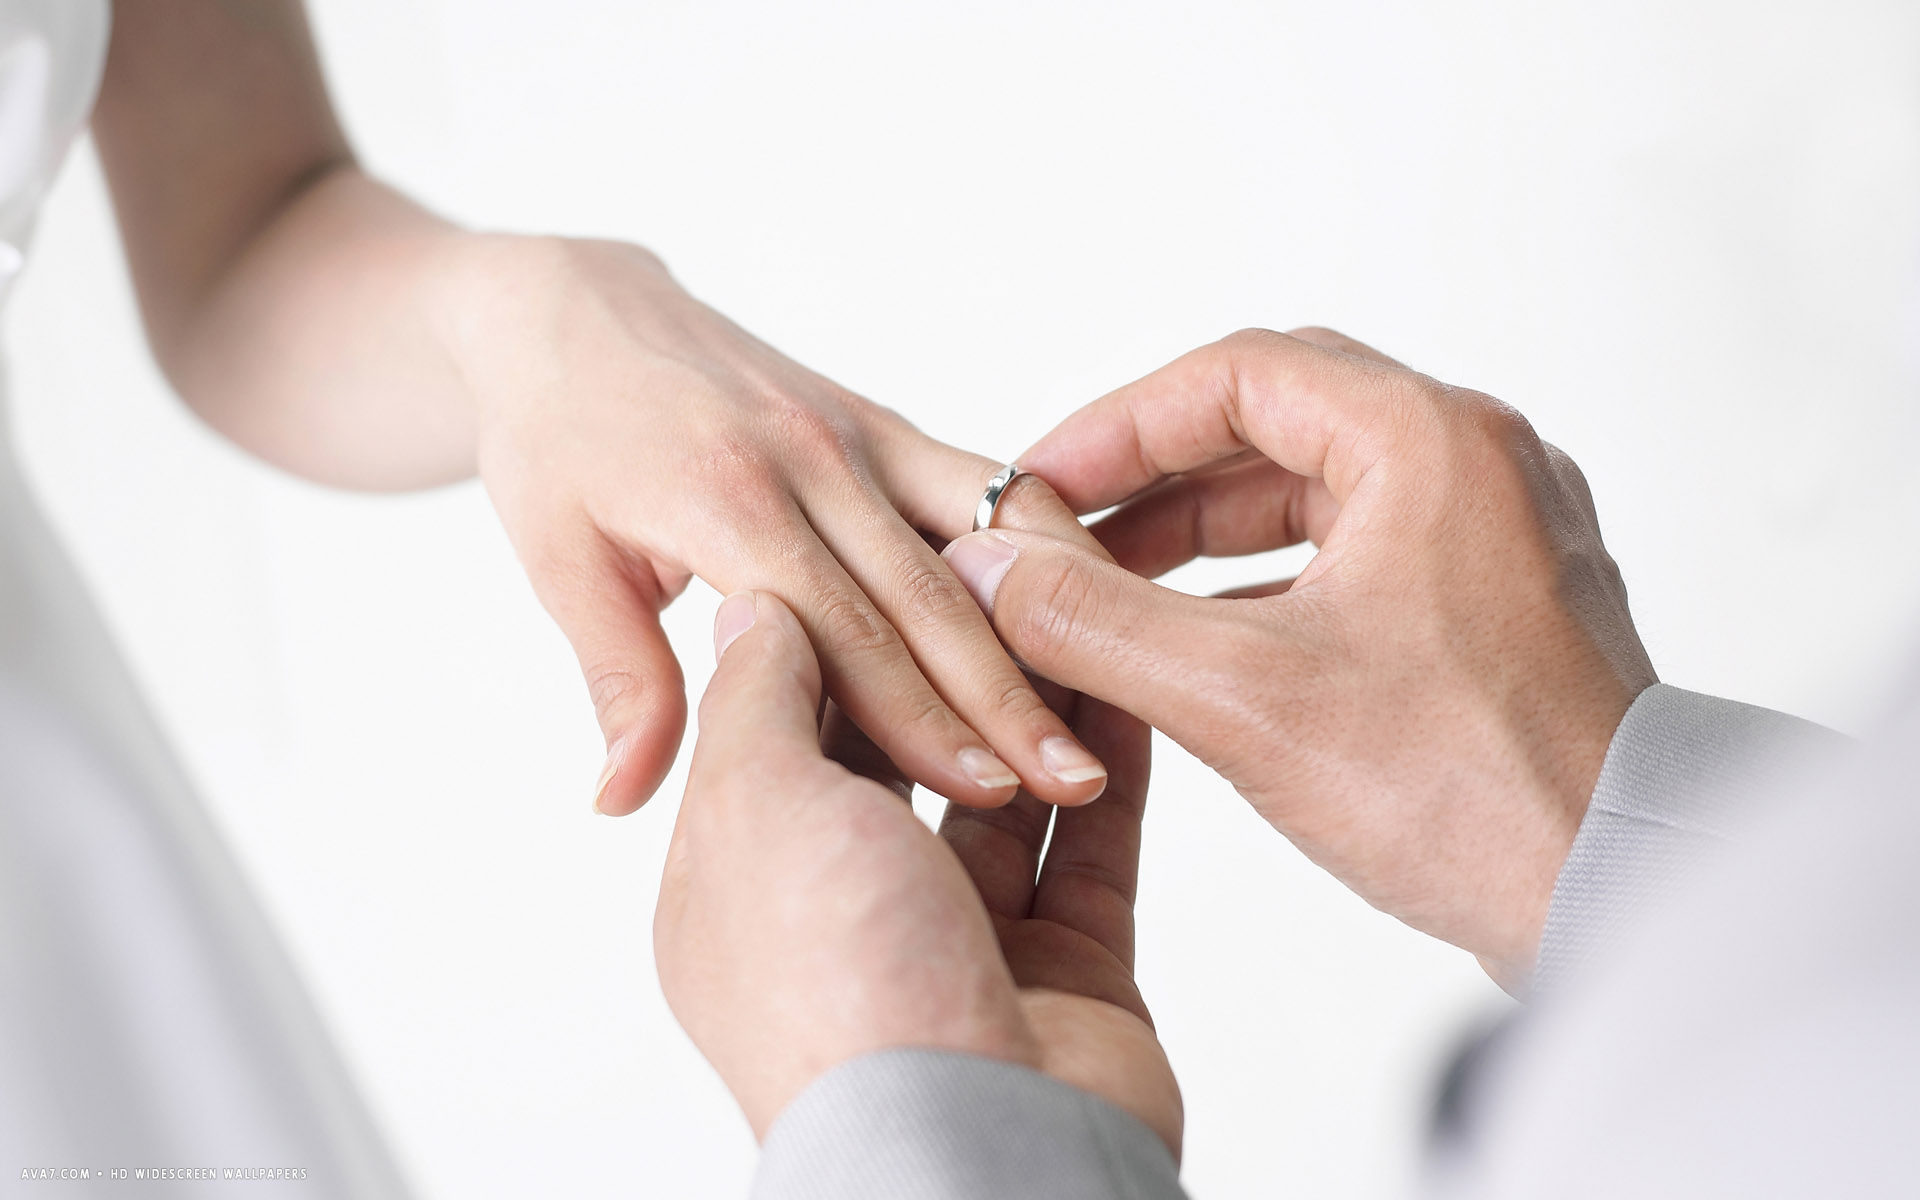 wedding ring hands marriage wife husband bride groom hd widescreen